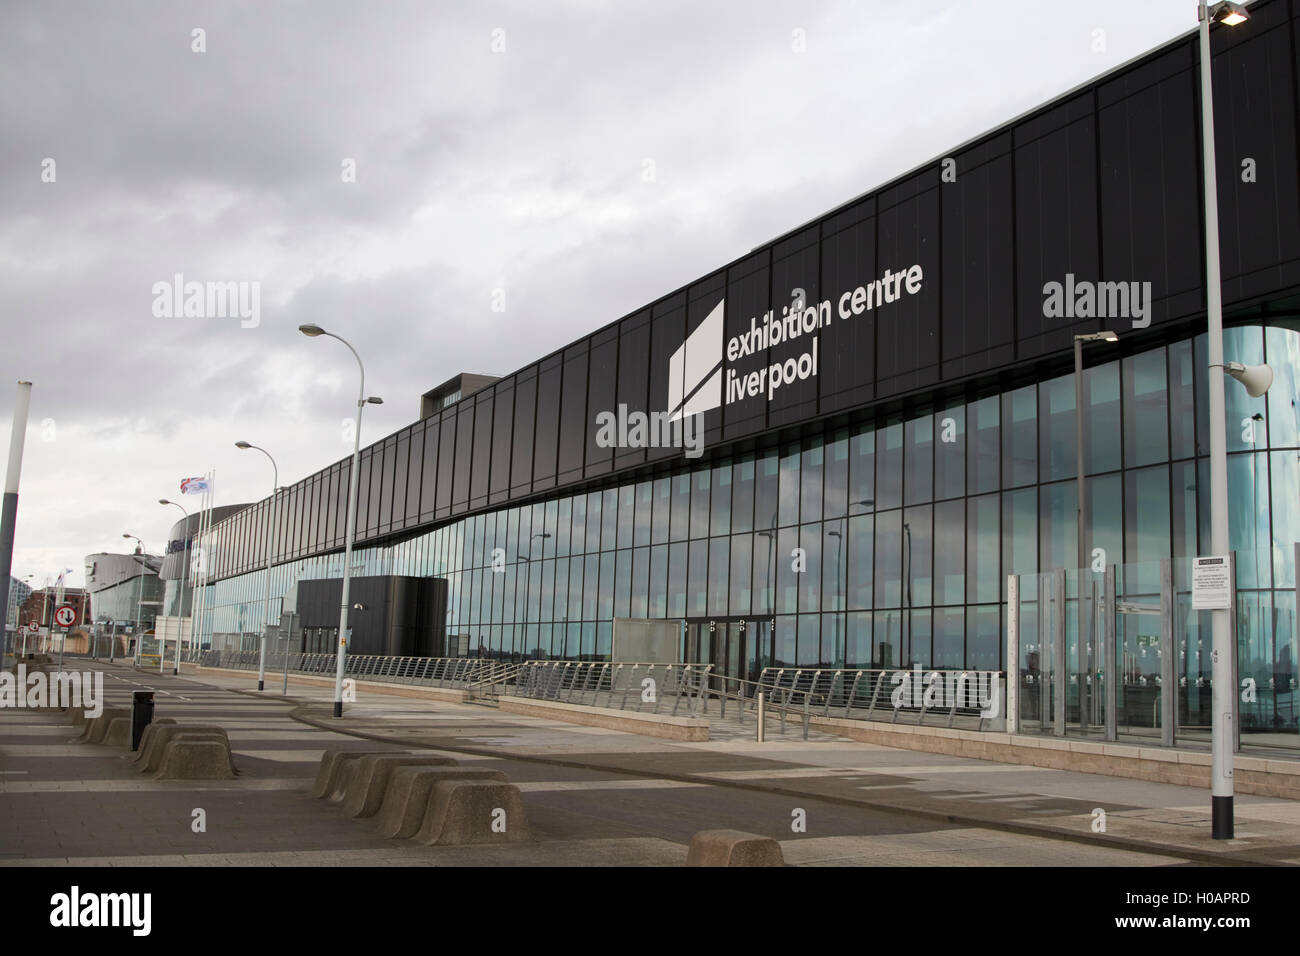 exhibition centre Liverpool Merseyside UK - Stock Image